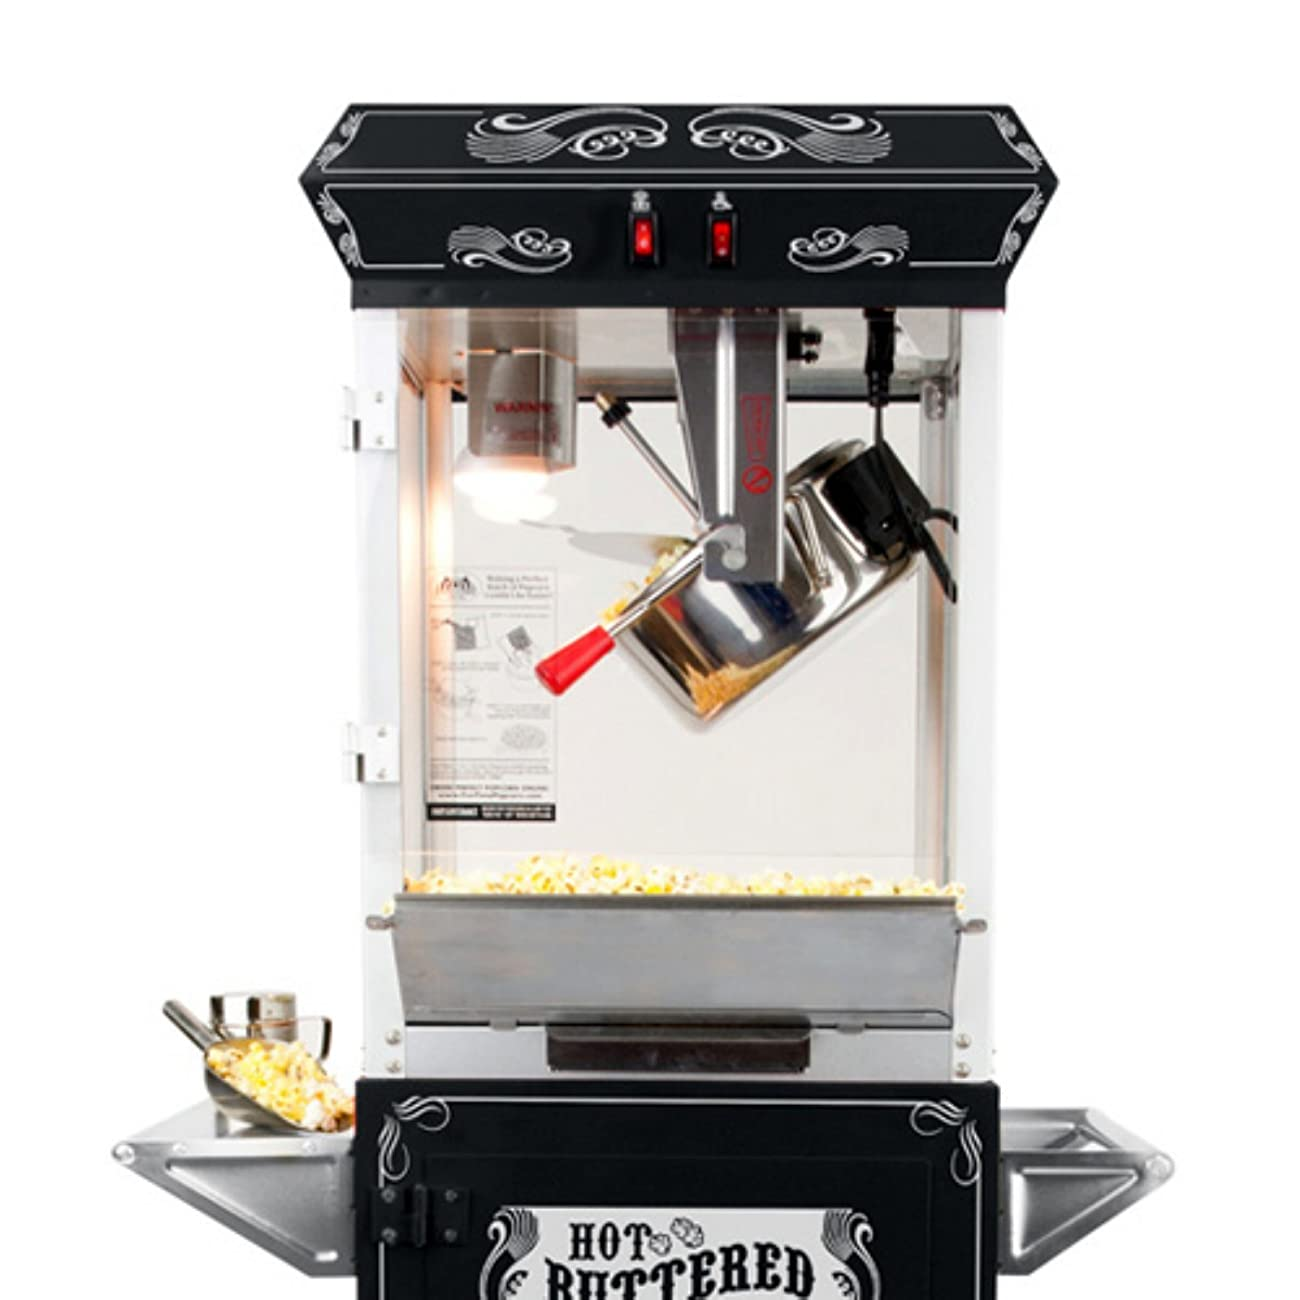 FunTime Sideshow Popper 4-Ounce Hot Oil Popcorn Machine with Cart, Black/Silver 3